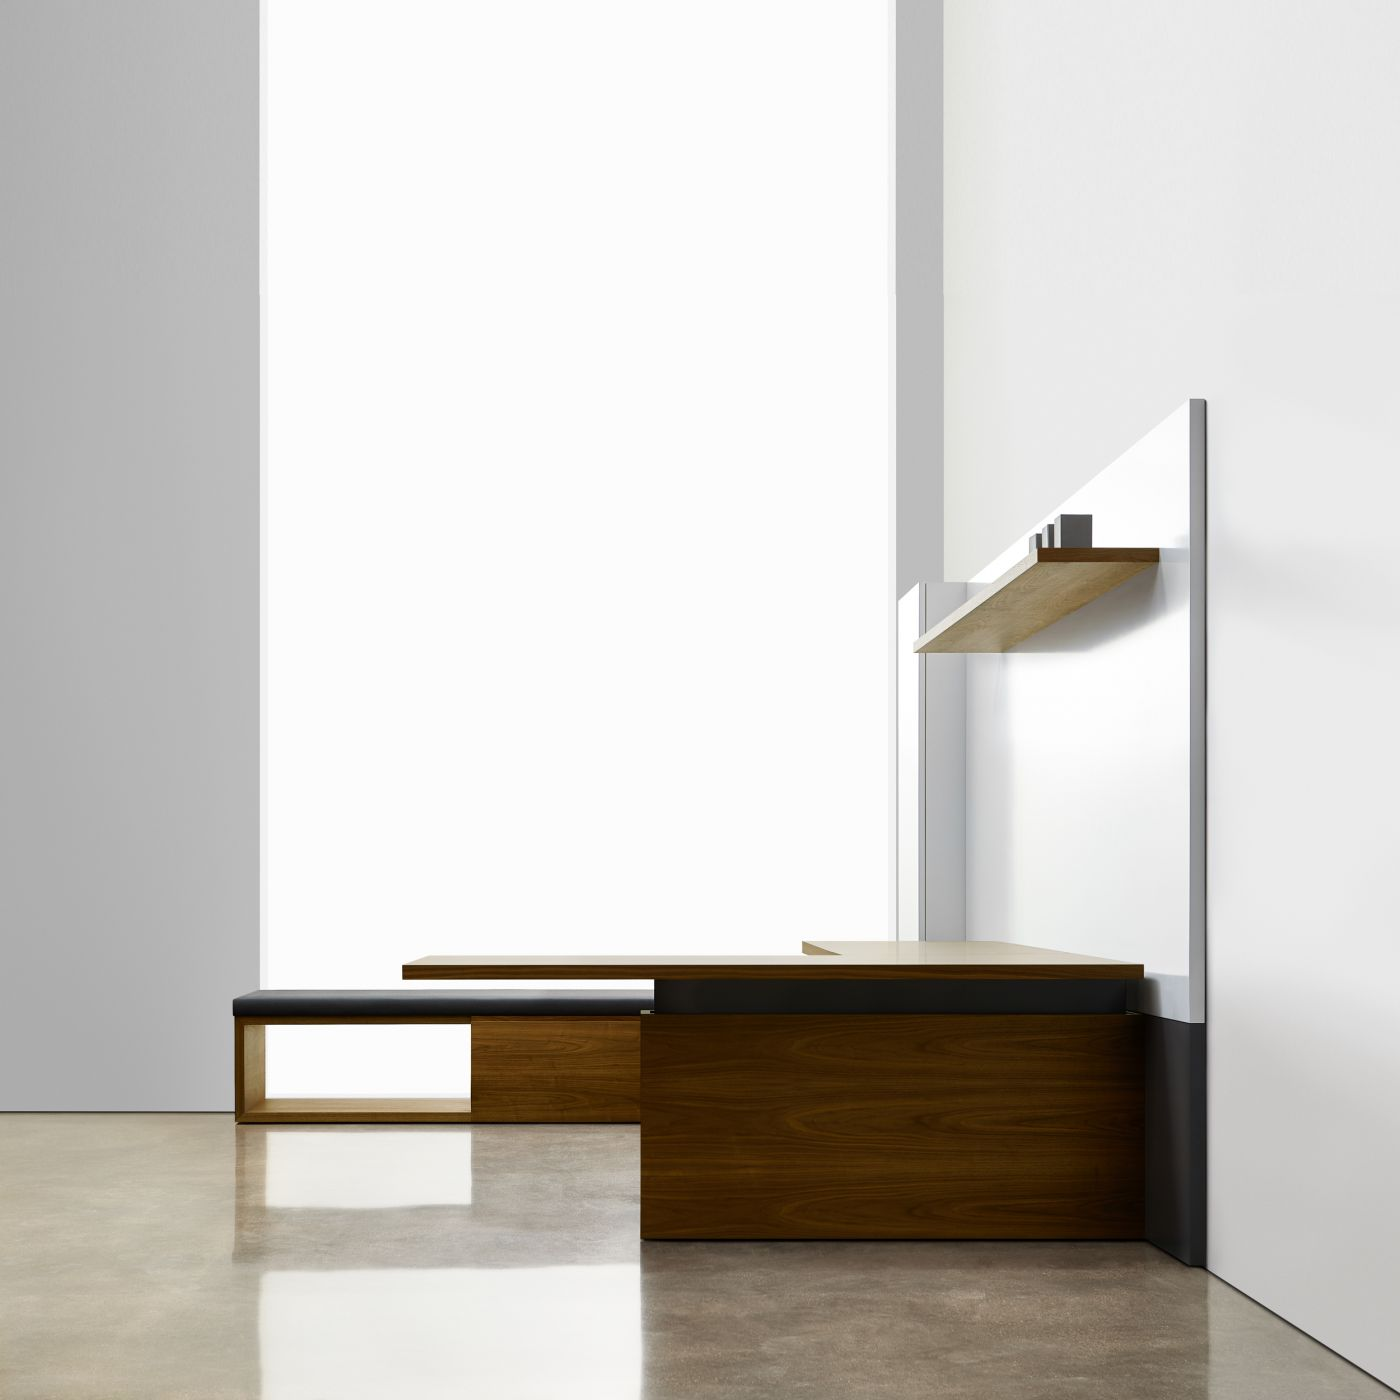 Minimalist lines expressed in a timeless design.